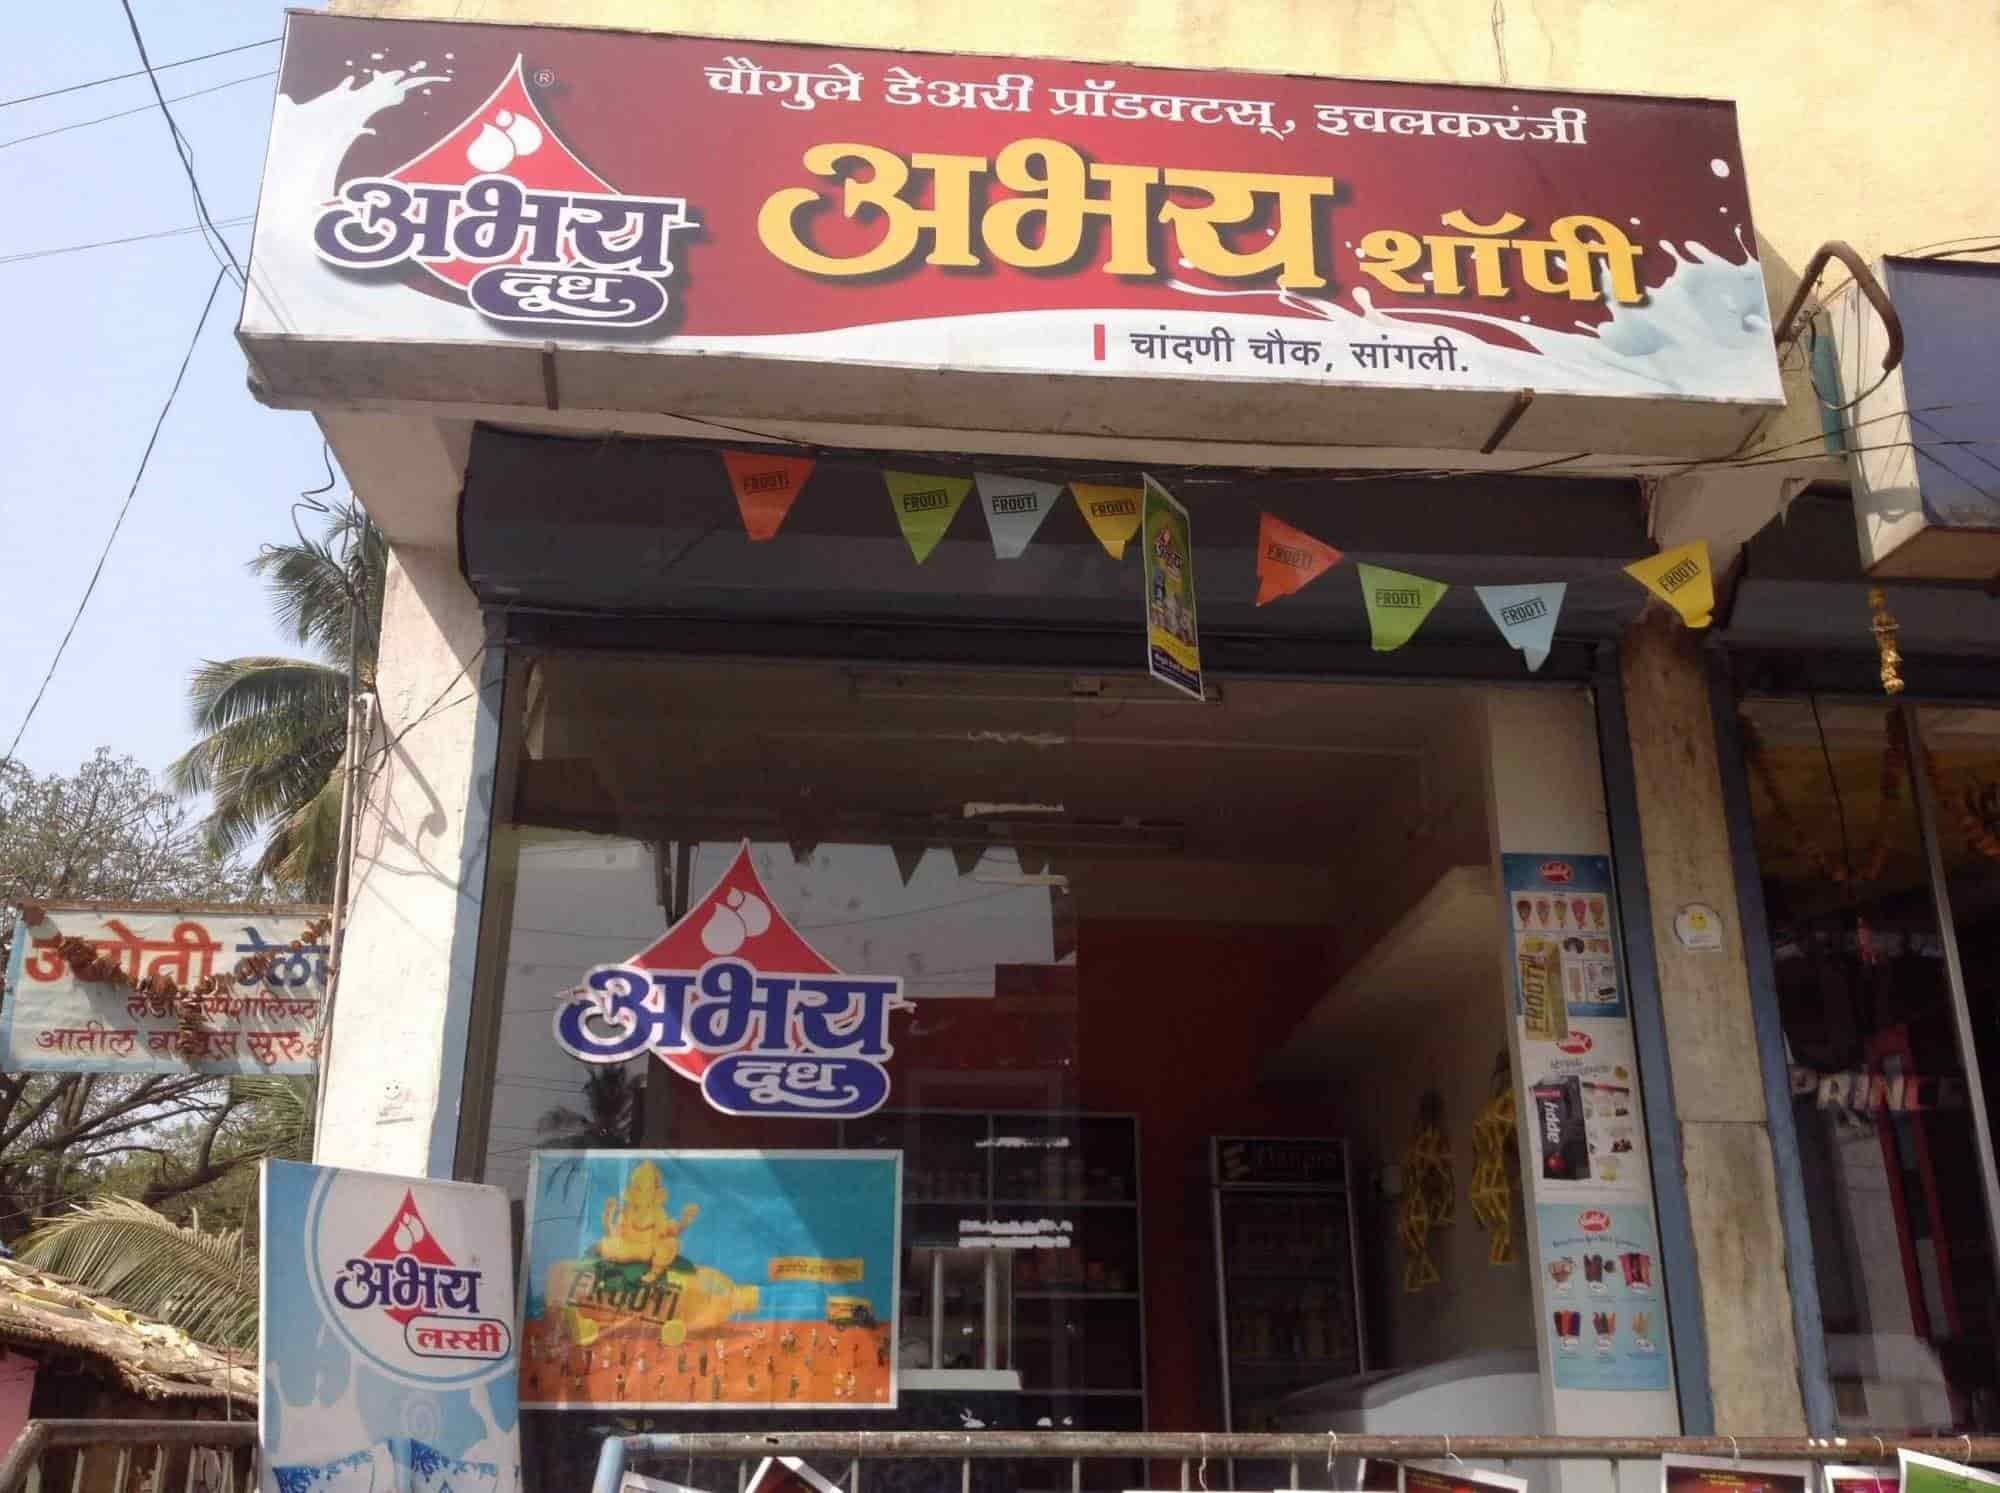 Abhay Shoppy Photos, Chandni Chowk, Sangli- Pictures & Images